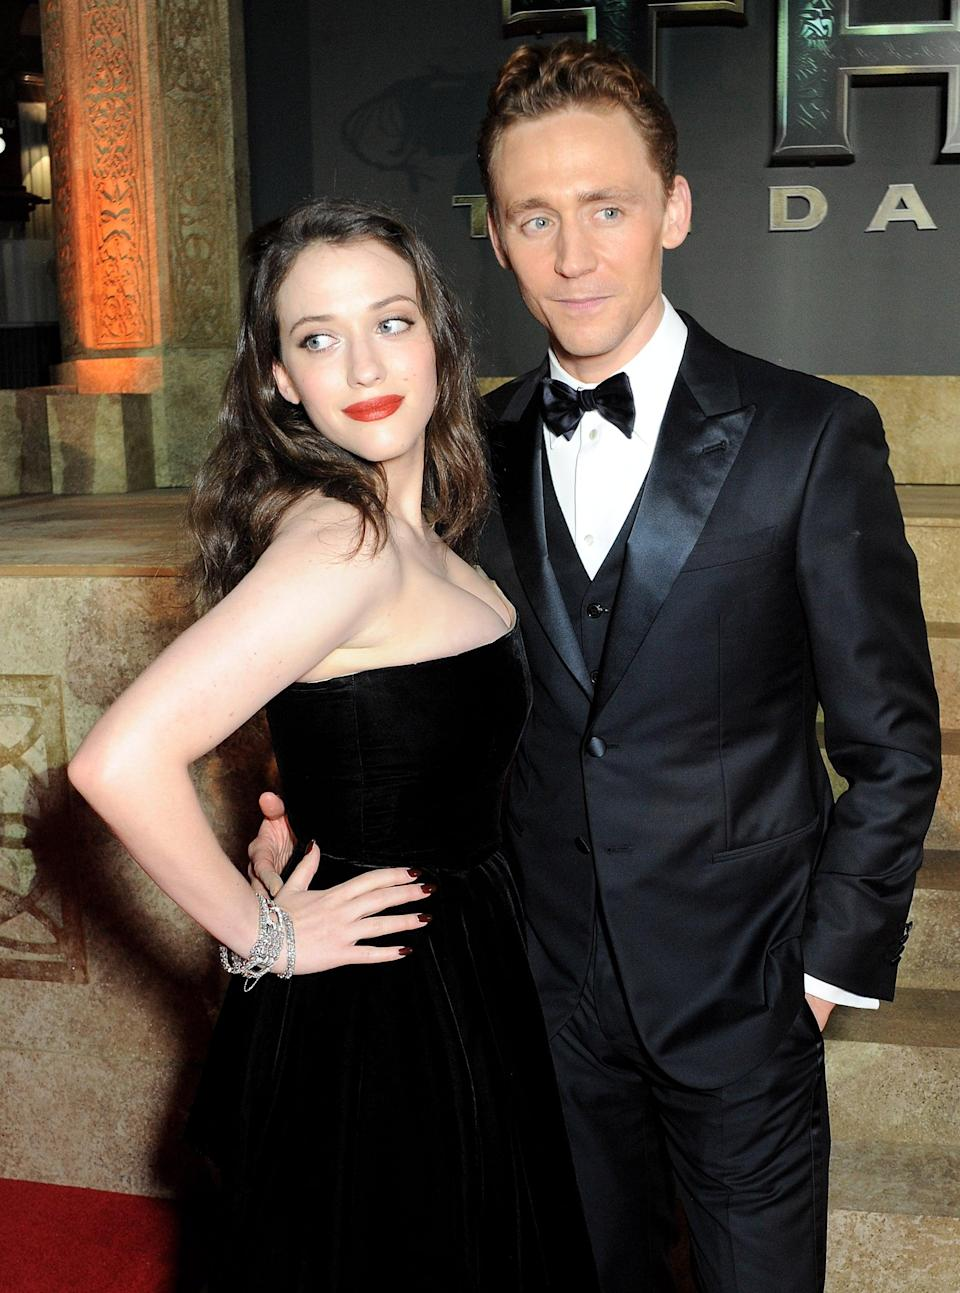 """<p><a href=""""https://www.popsugar.com/celebrity/Who-Has-Tom-Hiddleston-Dated-41763532"""" class=""""link rapid-noclick-resp"""" rel=""""nofollow noopener"""" target=""""_blank"""" data-ylk=""""slk:The Thor costars dated briefly"""">The <strong>Thor</strong> costars dated briefly</a> in 2010, even <a href=""""https://www.eonline.com/photos/8499/they-dated-surprising-star-couples"""" class=""""link rapid-noclick-resp"""" rel=""""nofollow noopener"""" target=""""_blank"""" data-ylk=""""slk:holding hands while attending Comic-Con"""">holding hands while attending Comic-Con</a> that same year. However, their relationship had ended by <strong>Thor</strong>'s 2011 premiere.</p>"""